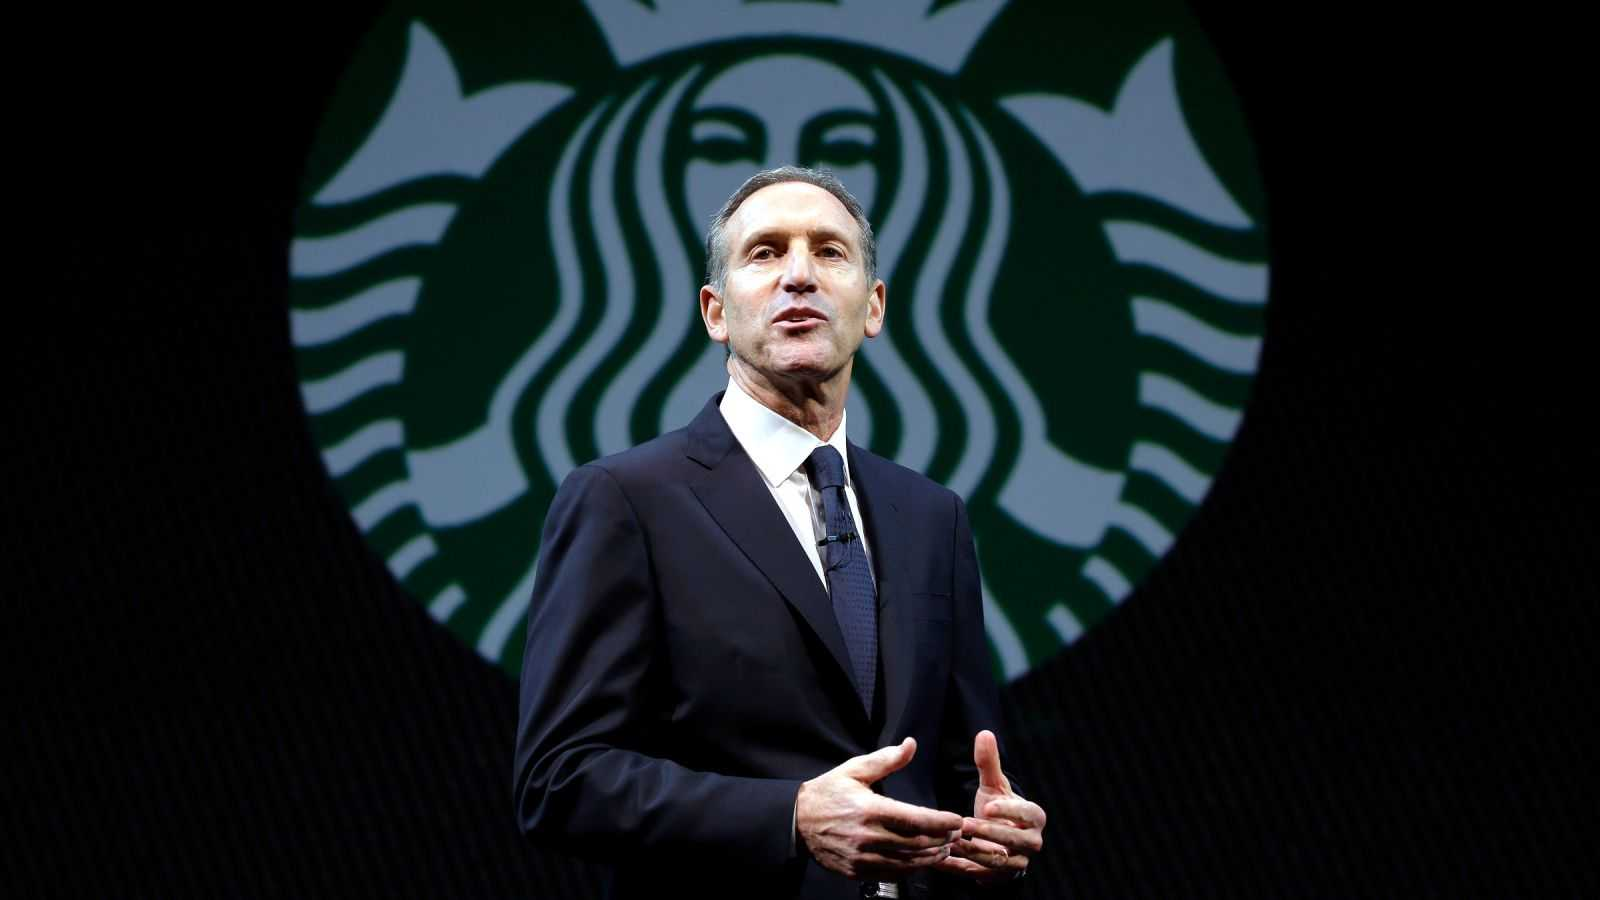 Starbucks Pledges To Hire 10,000 Refugees Over 5 Years | starbucks